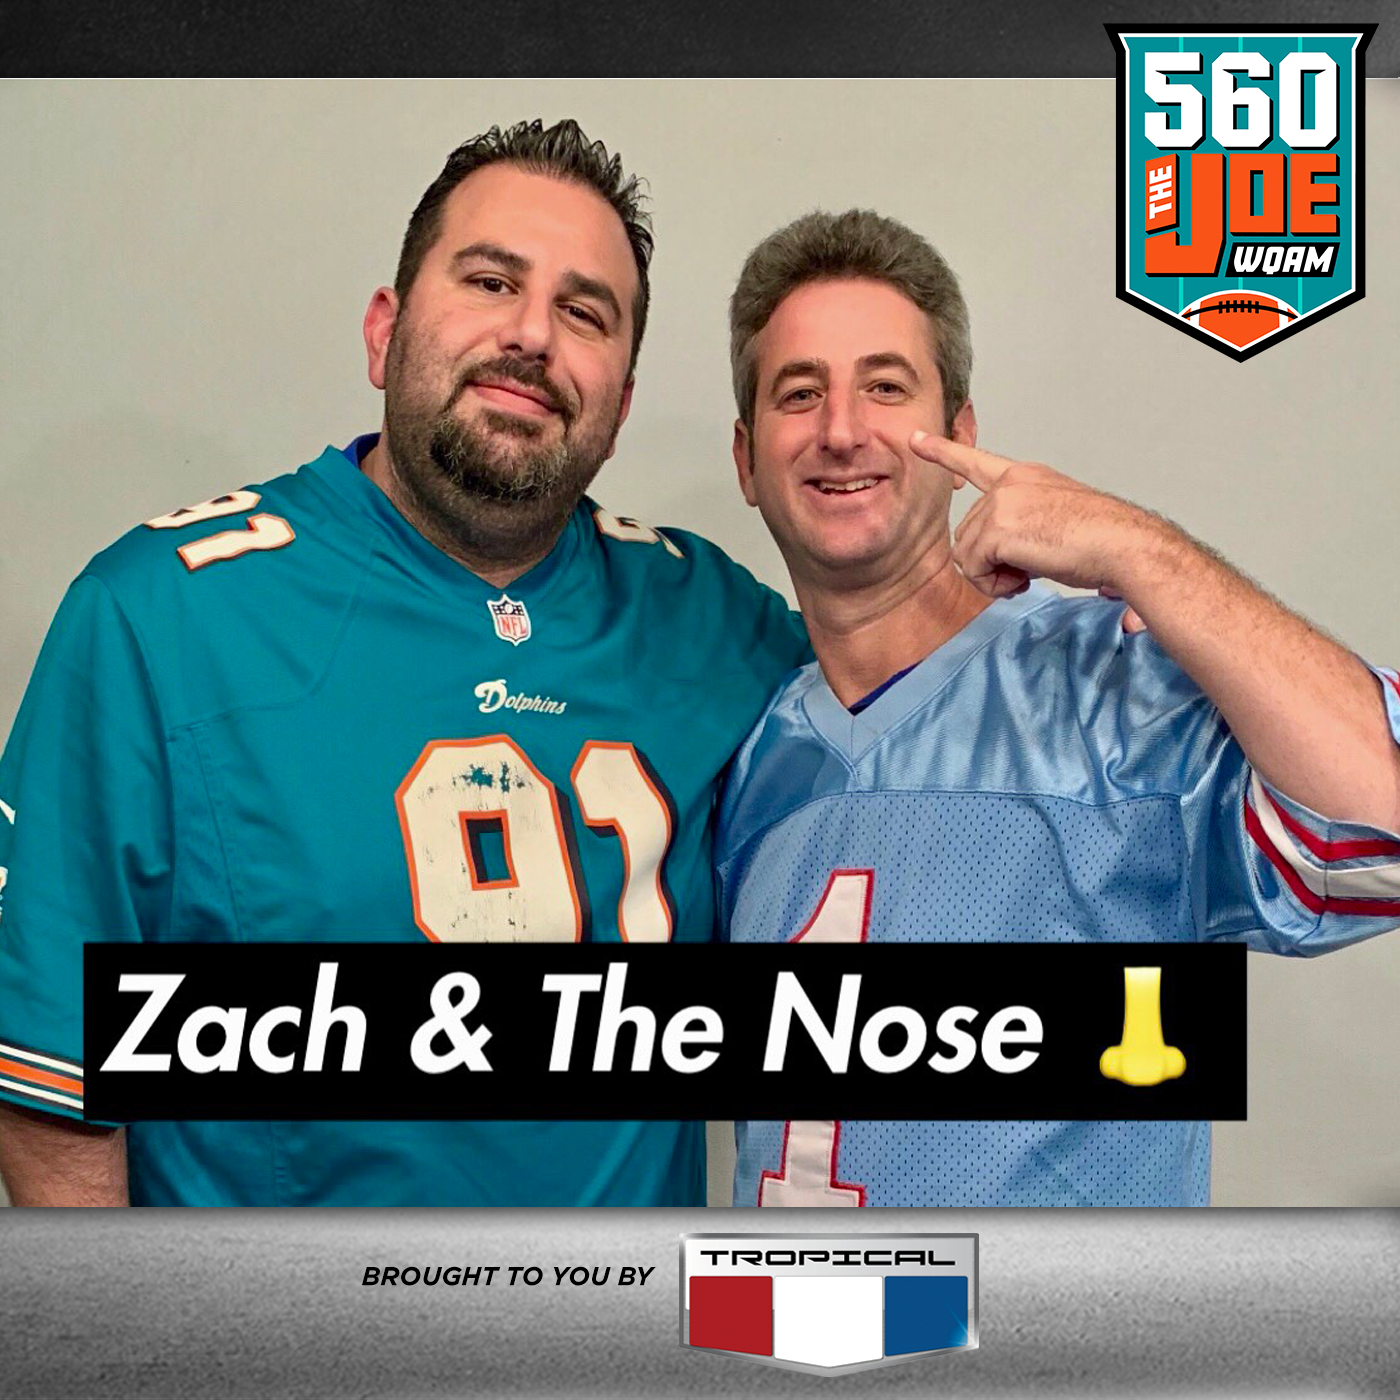 Zach & The Nose